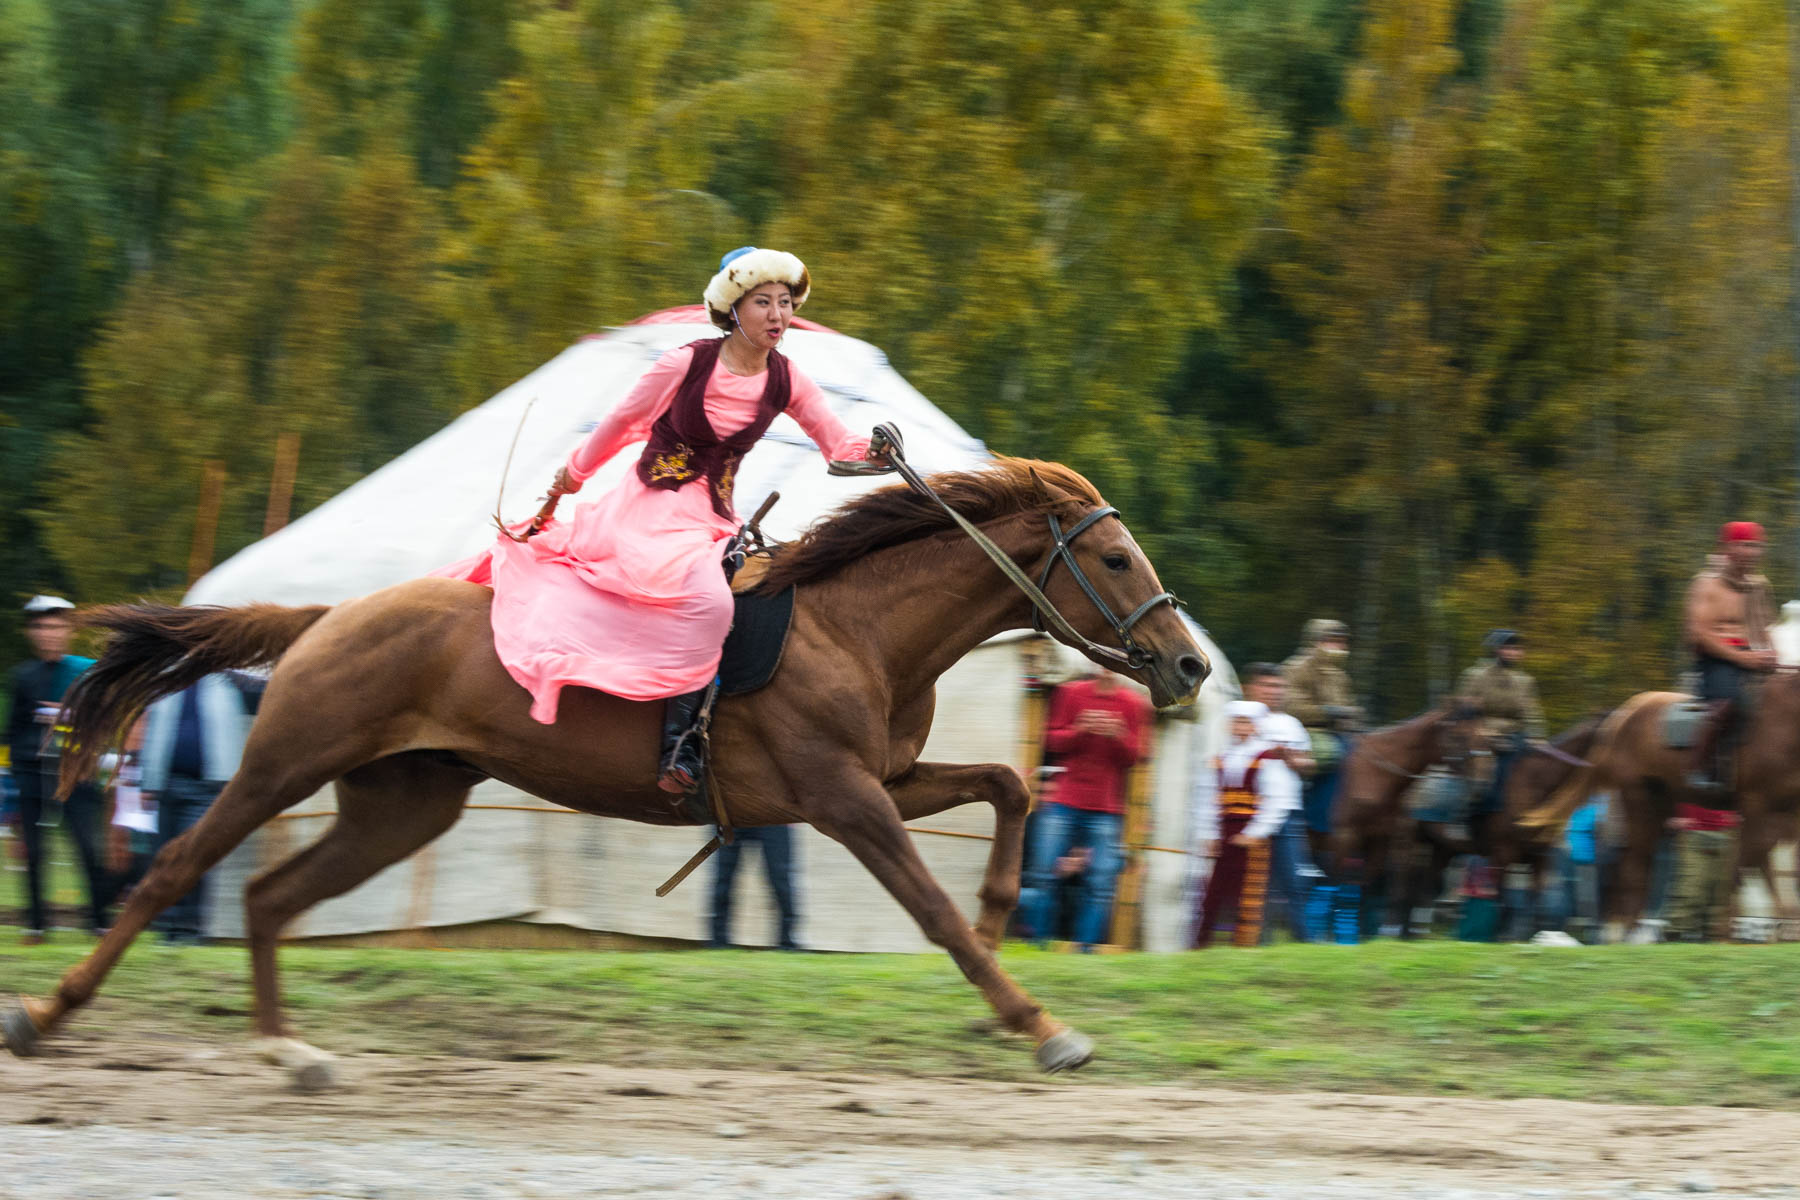 A performing woman riding a horse in Kyrgyzstan - Are the 2018 World Nomad Games worth the trip? - Lost With Purpose